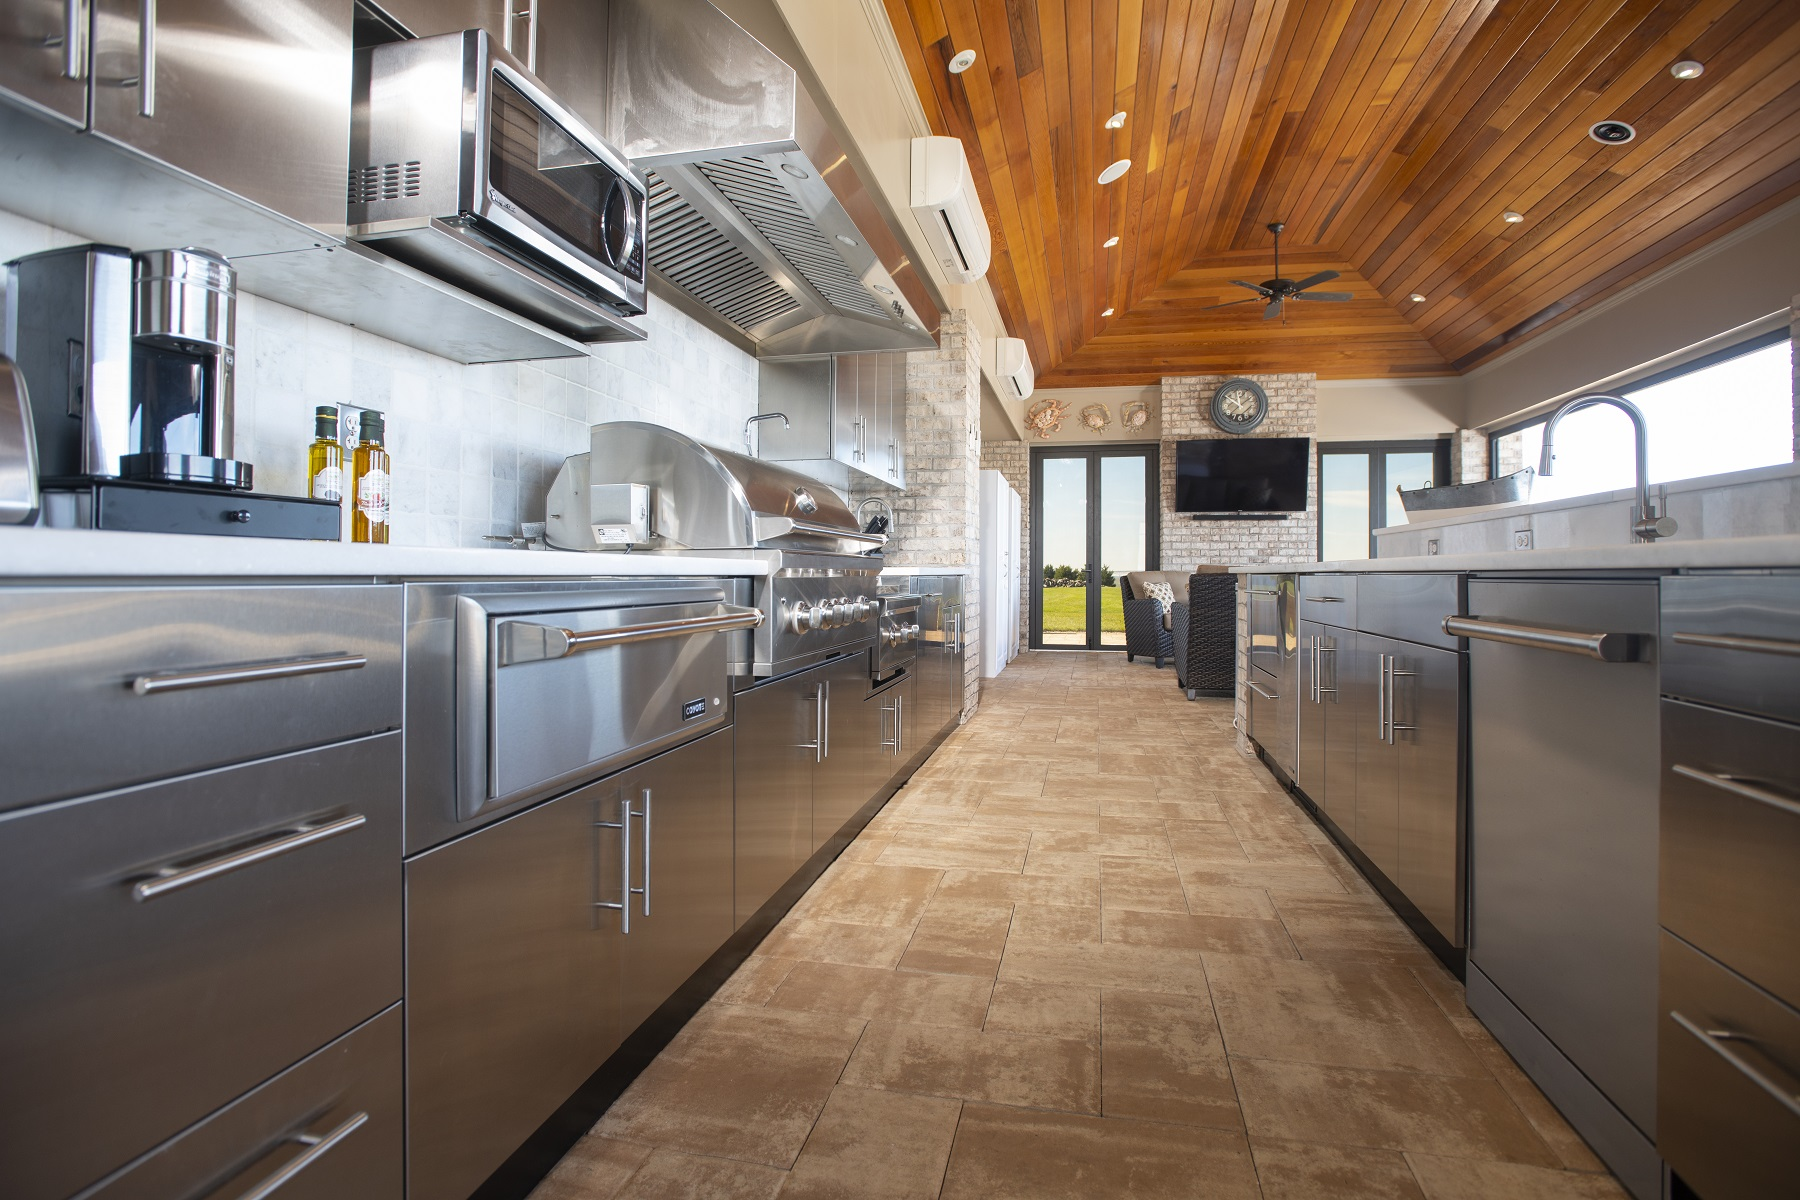 Building Permit To Remodel A Kitchen